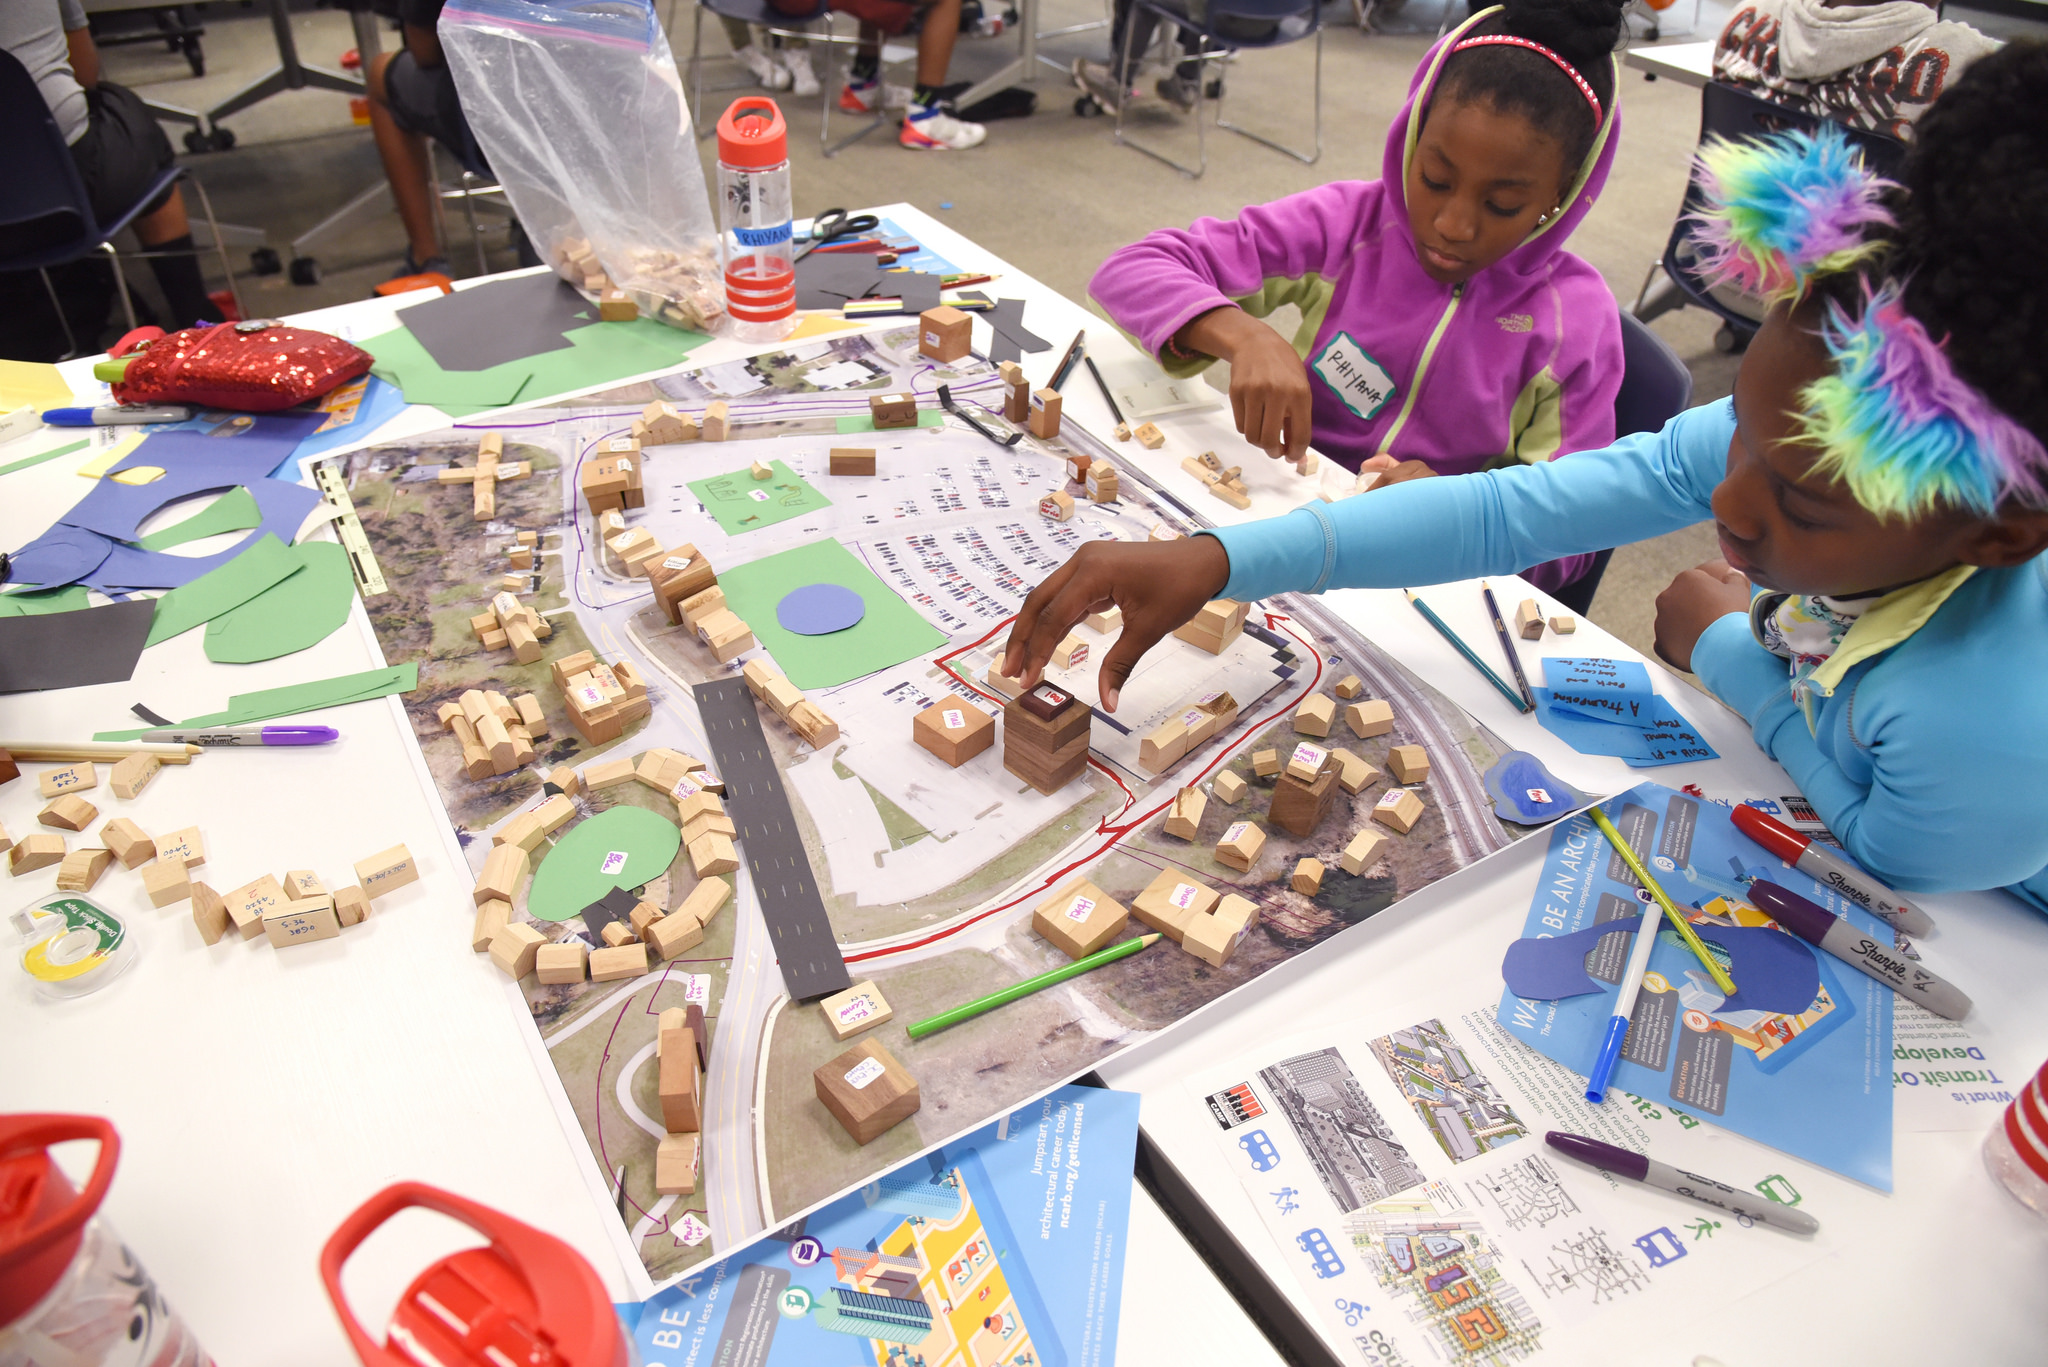 Hip Hop Architecture Camp Brings Urban Planning to Summer Programming